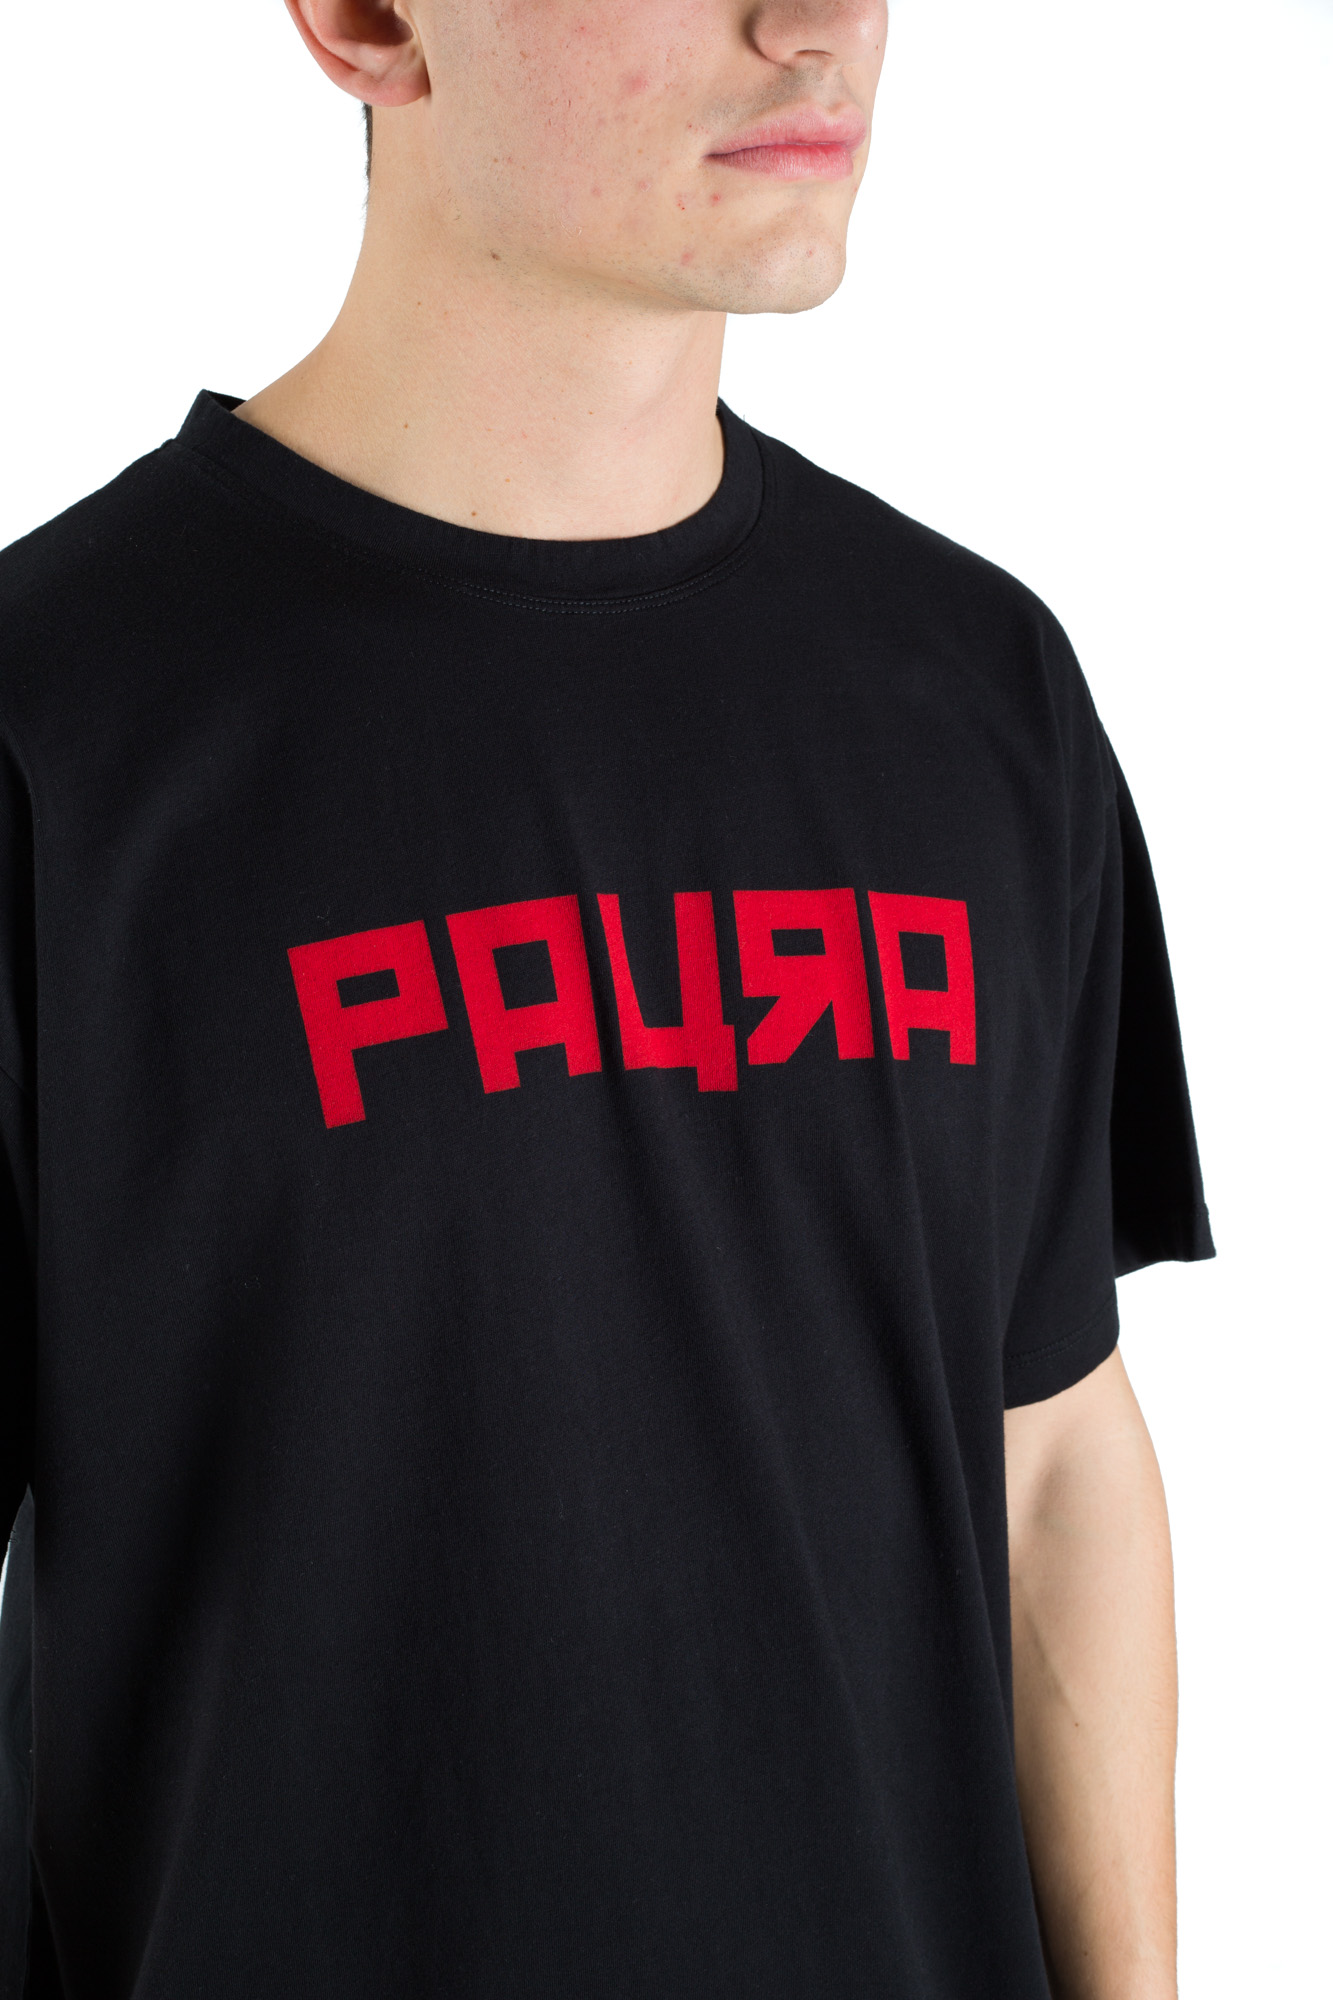 Paura - Oversized T-shirt Black College